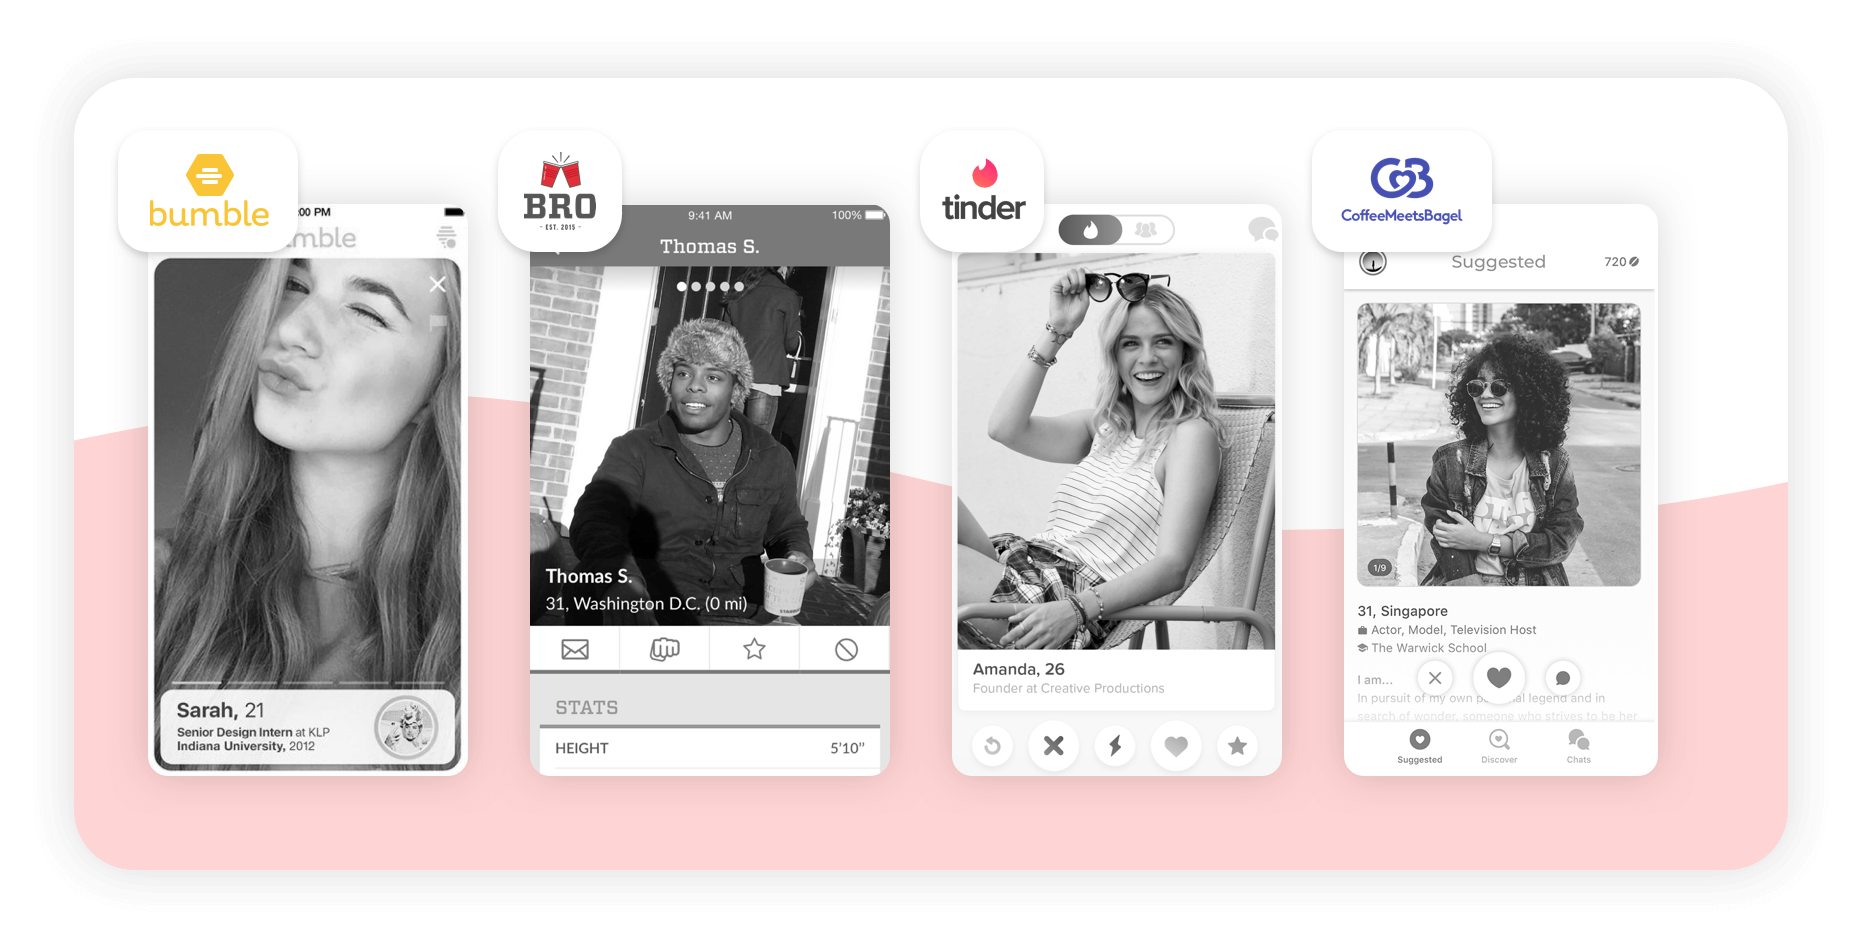 Dating`s app marketing plan. What special